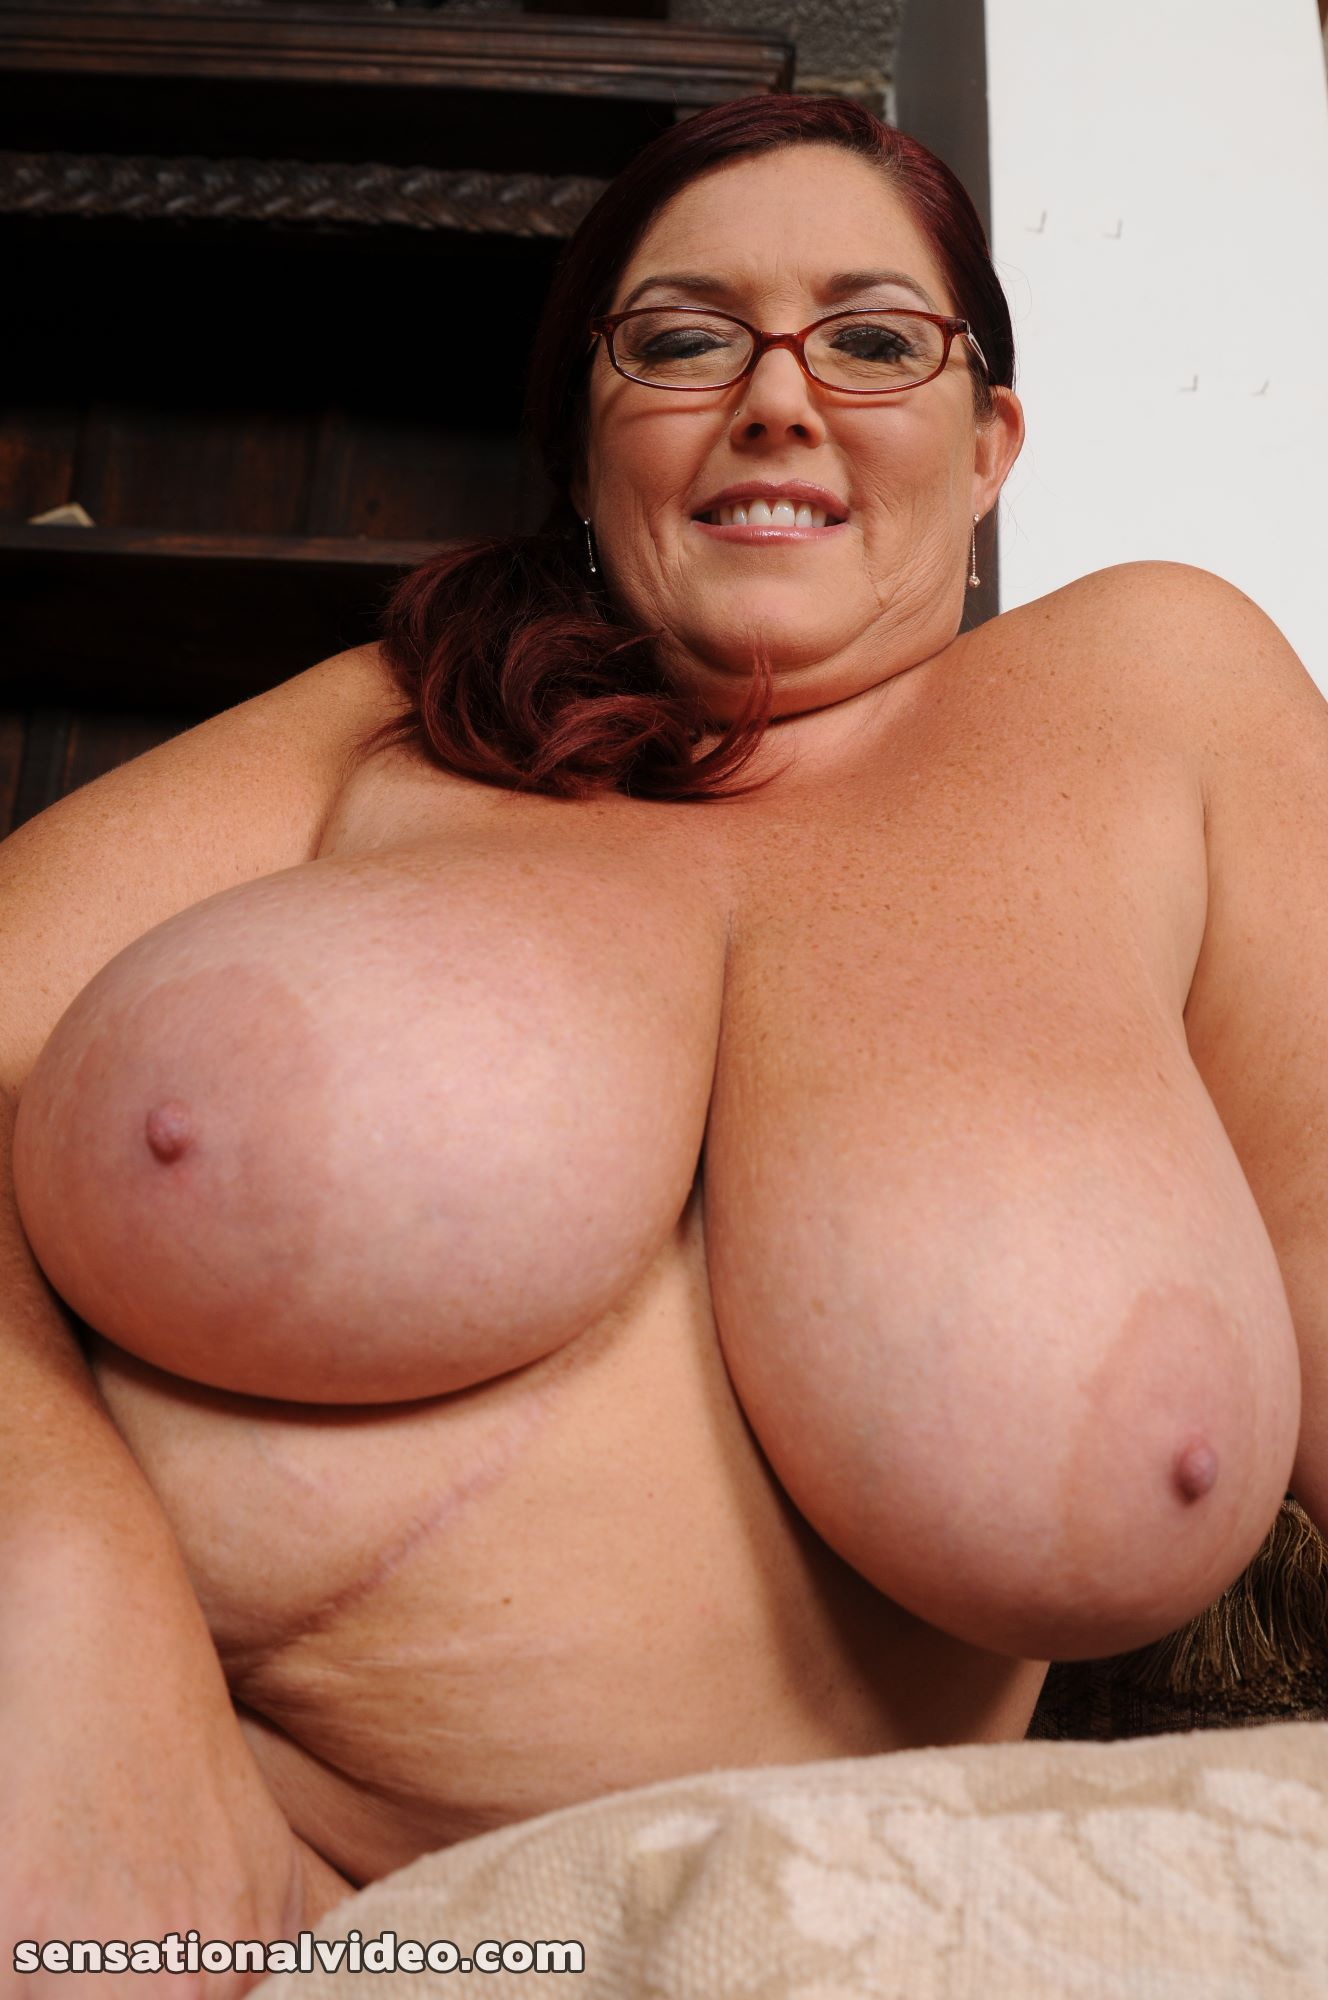 lesgalls spicytitties plumperpass gal553 pic 7